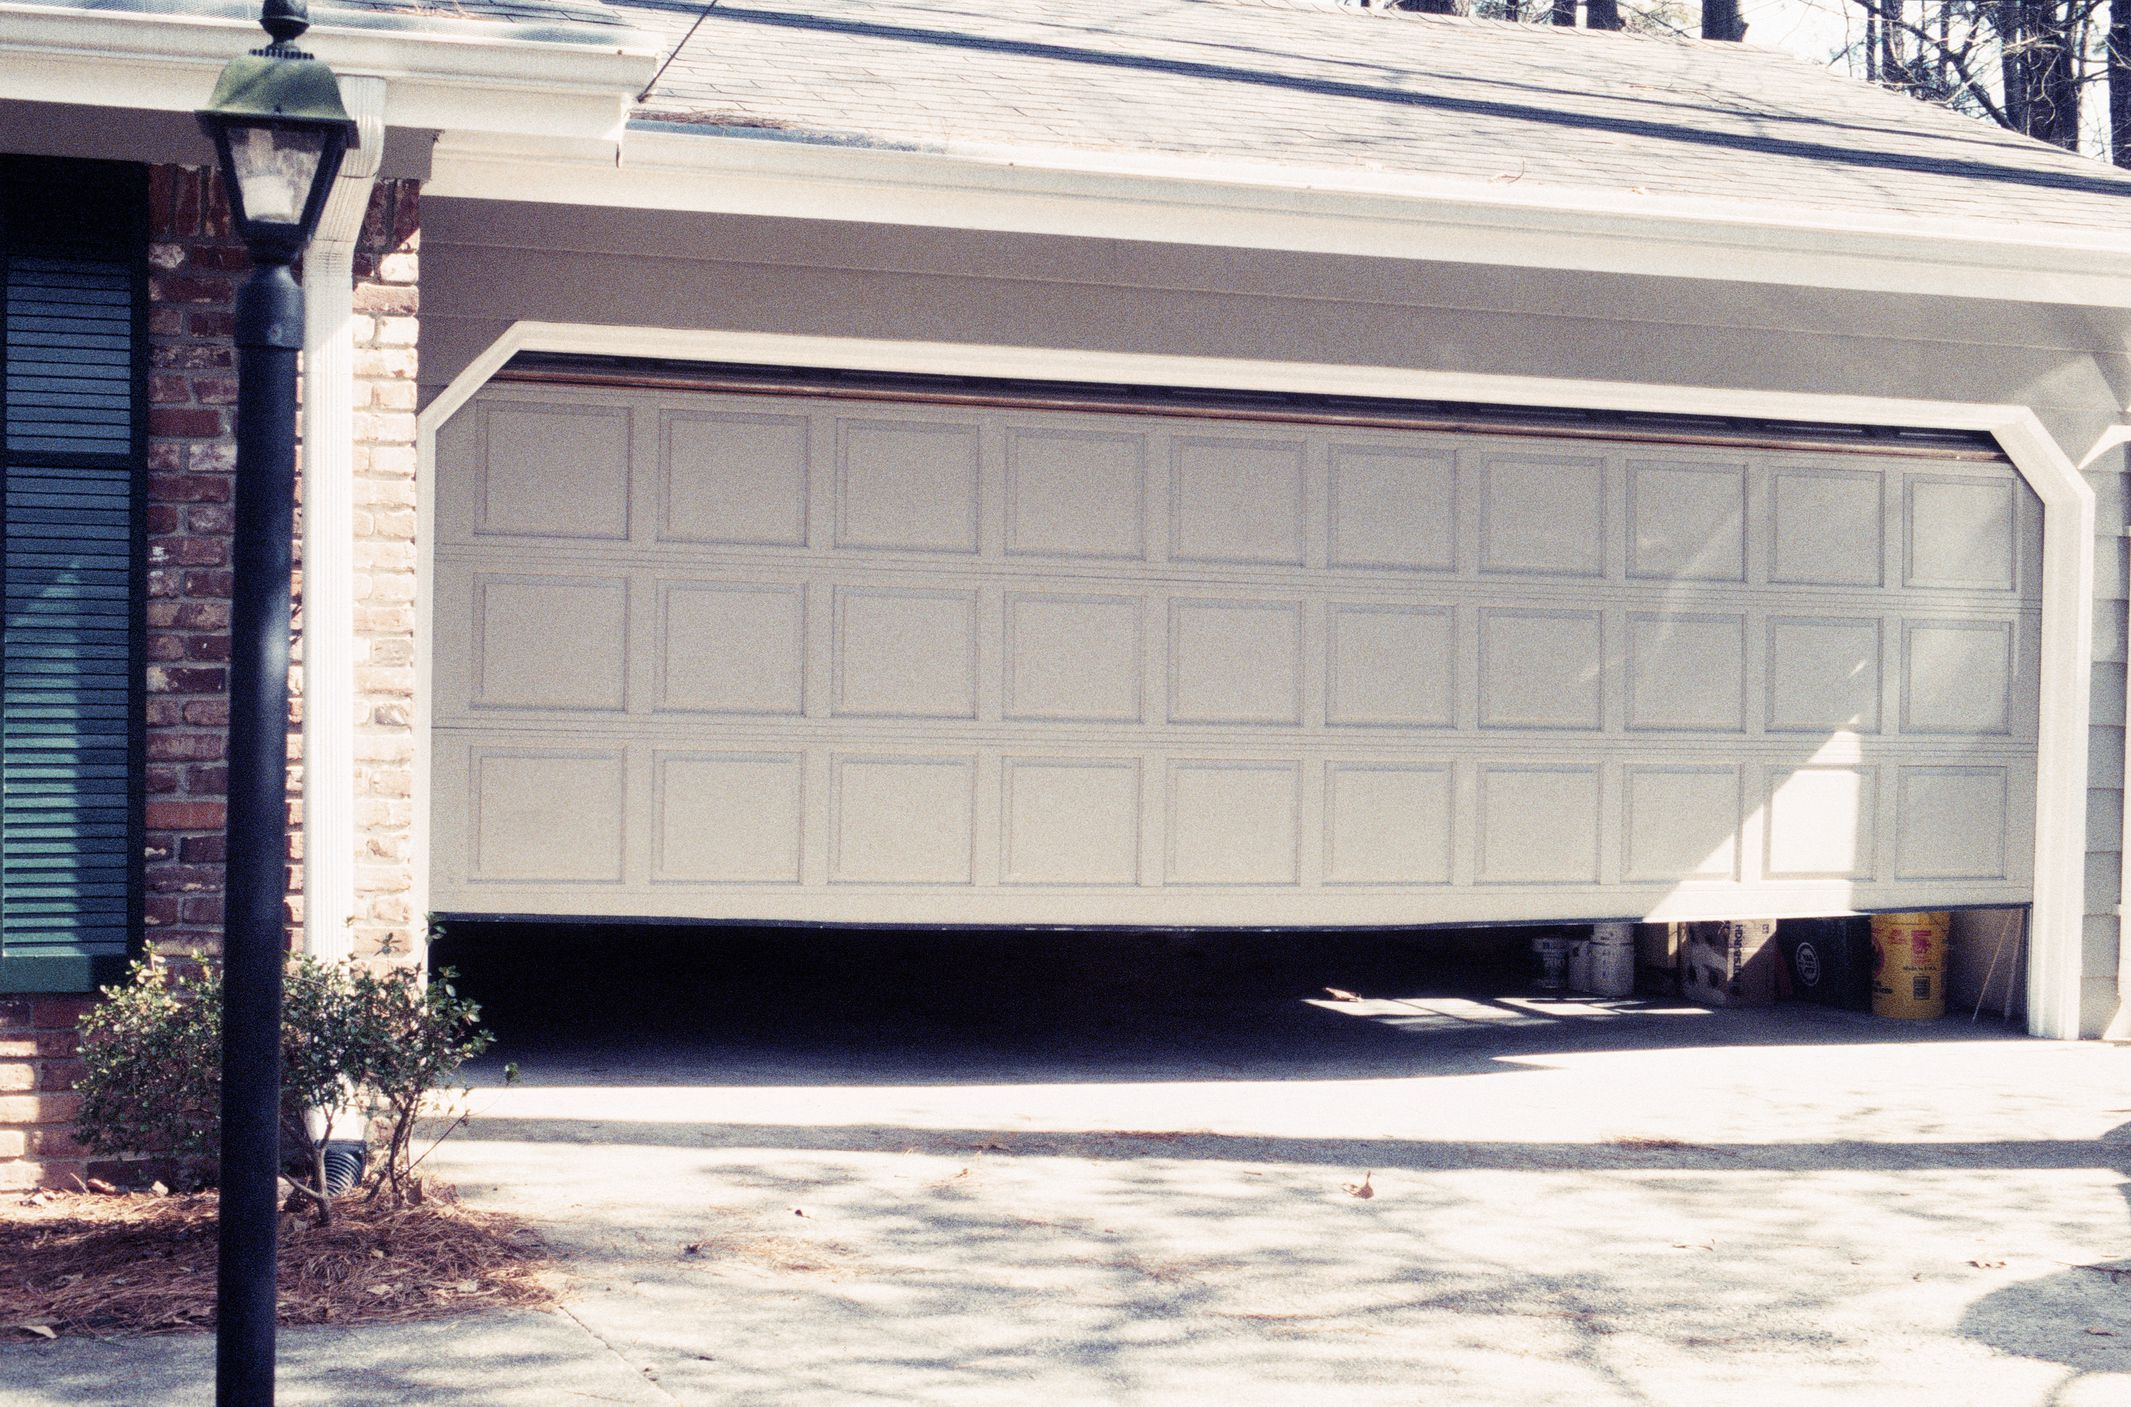 Normal height of garage doors - Normal Height Of Garage Doors 51